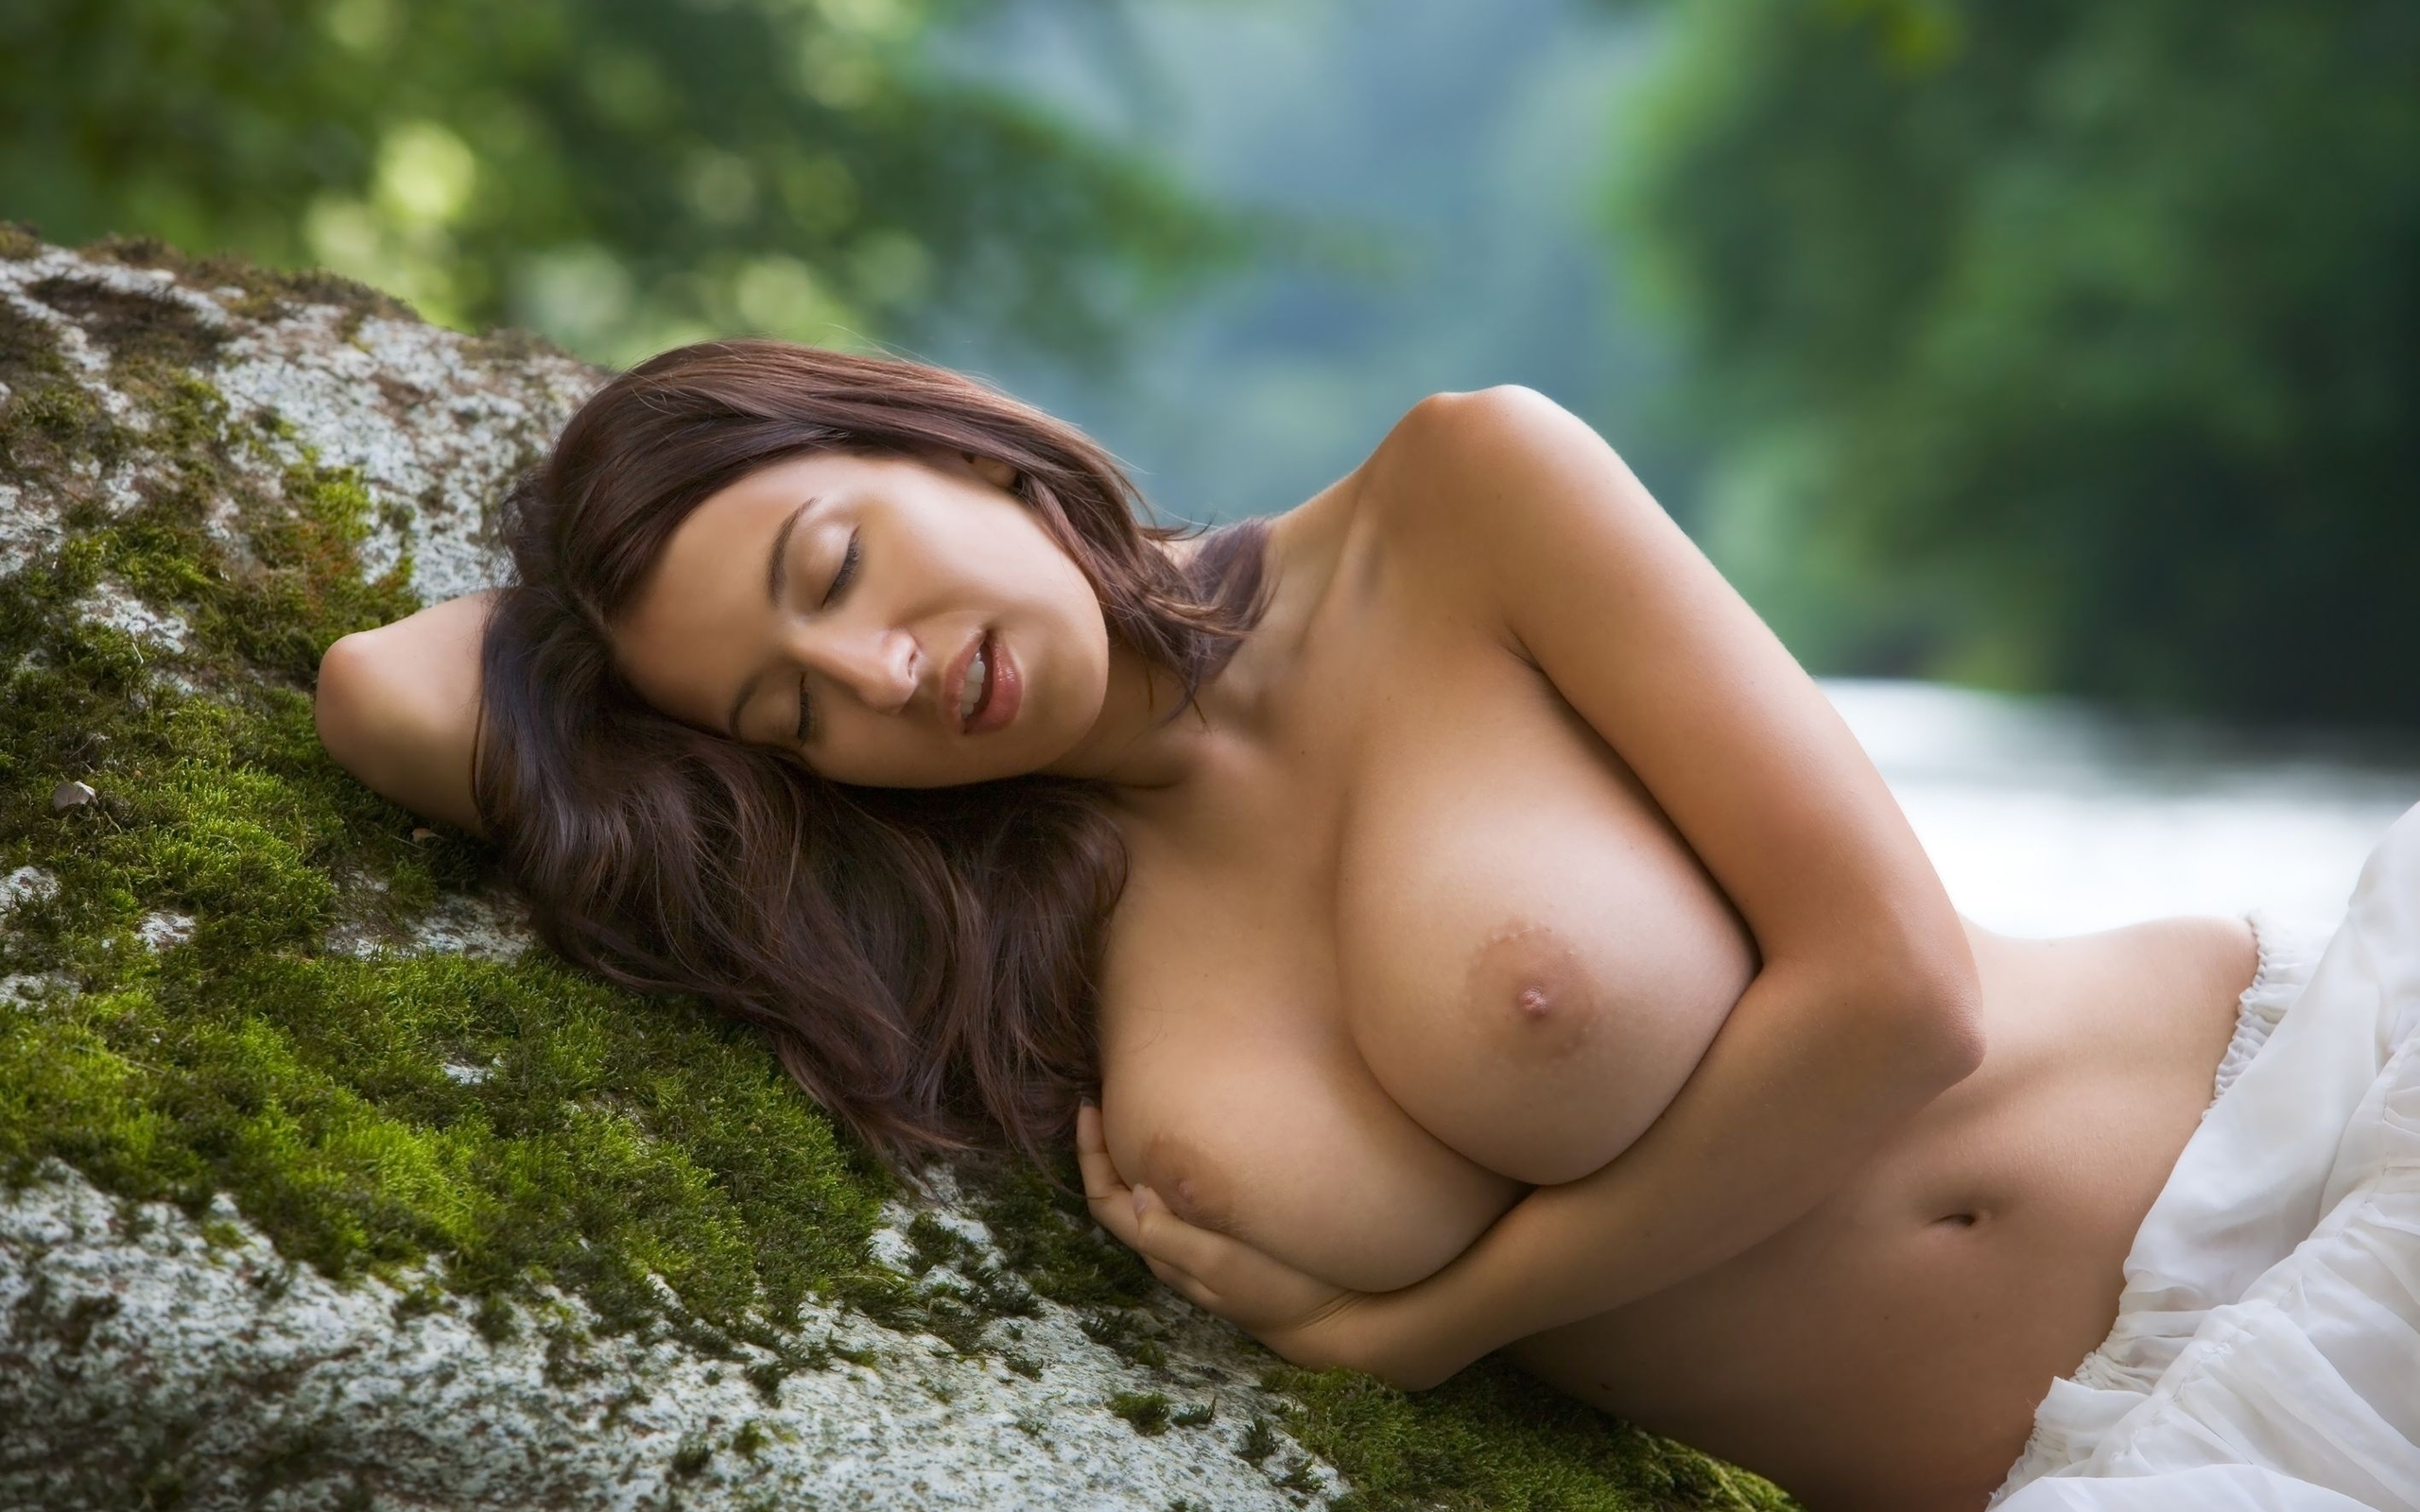 image-of-beautiful-naked-woman